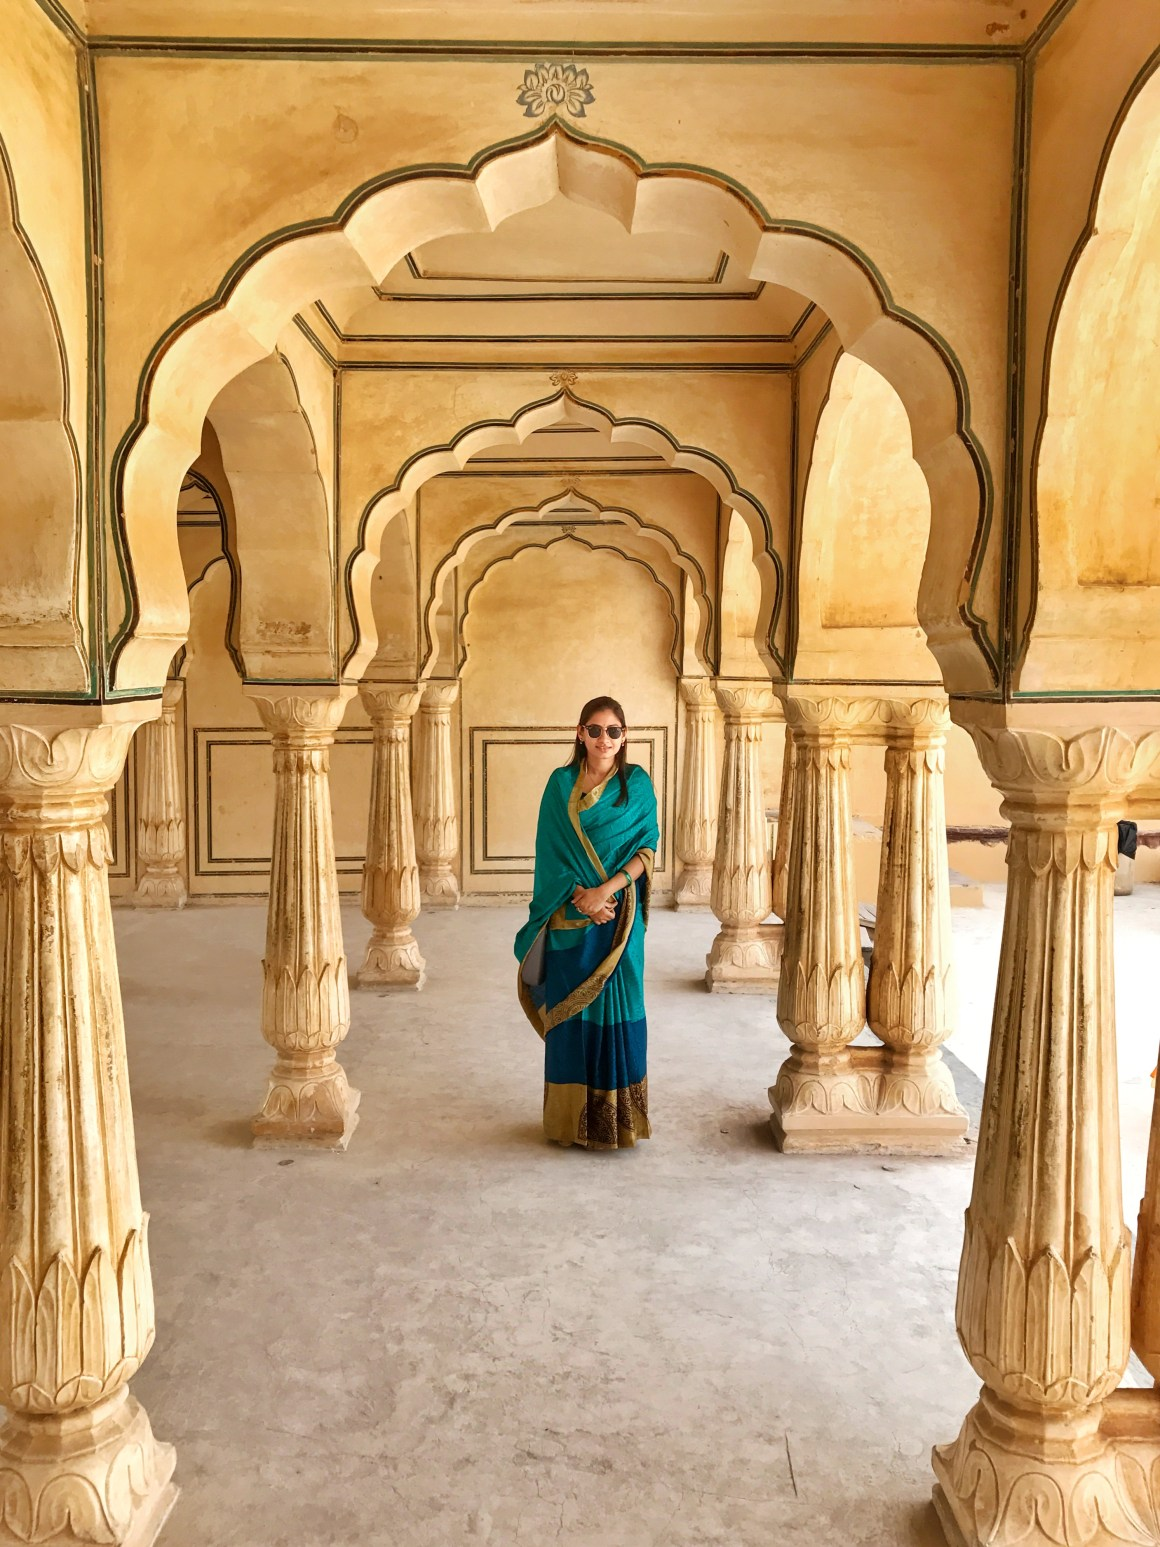 Jaipur travel guide - Amer fort